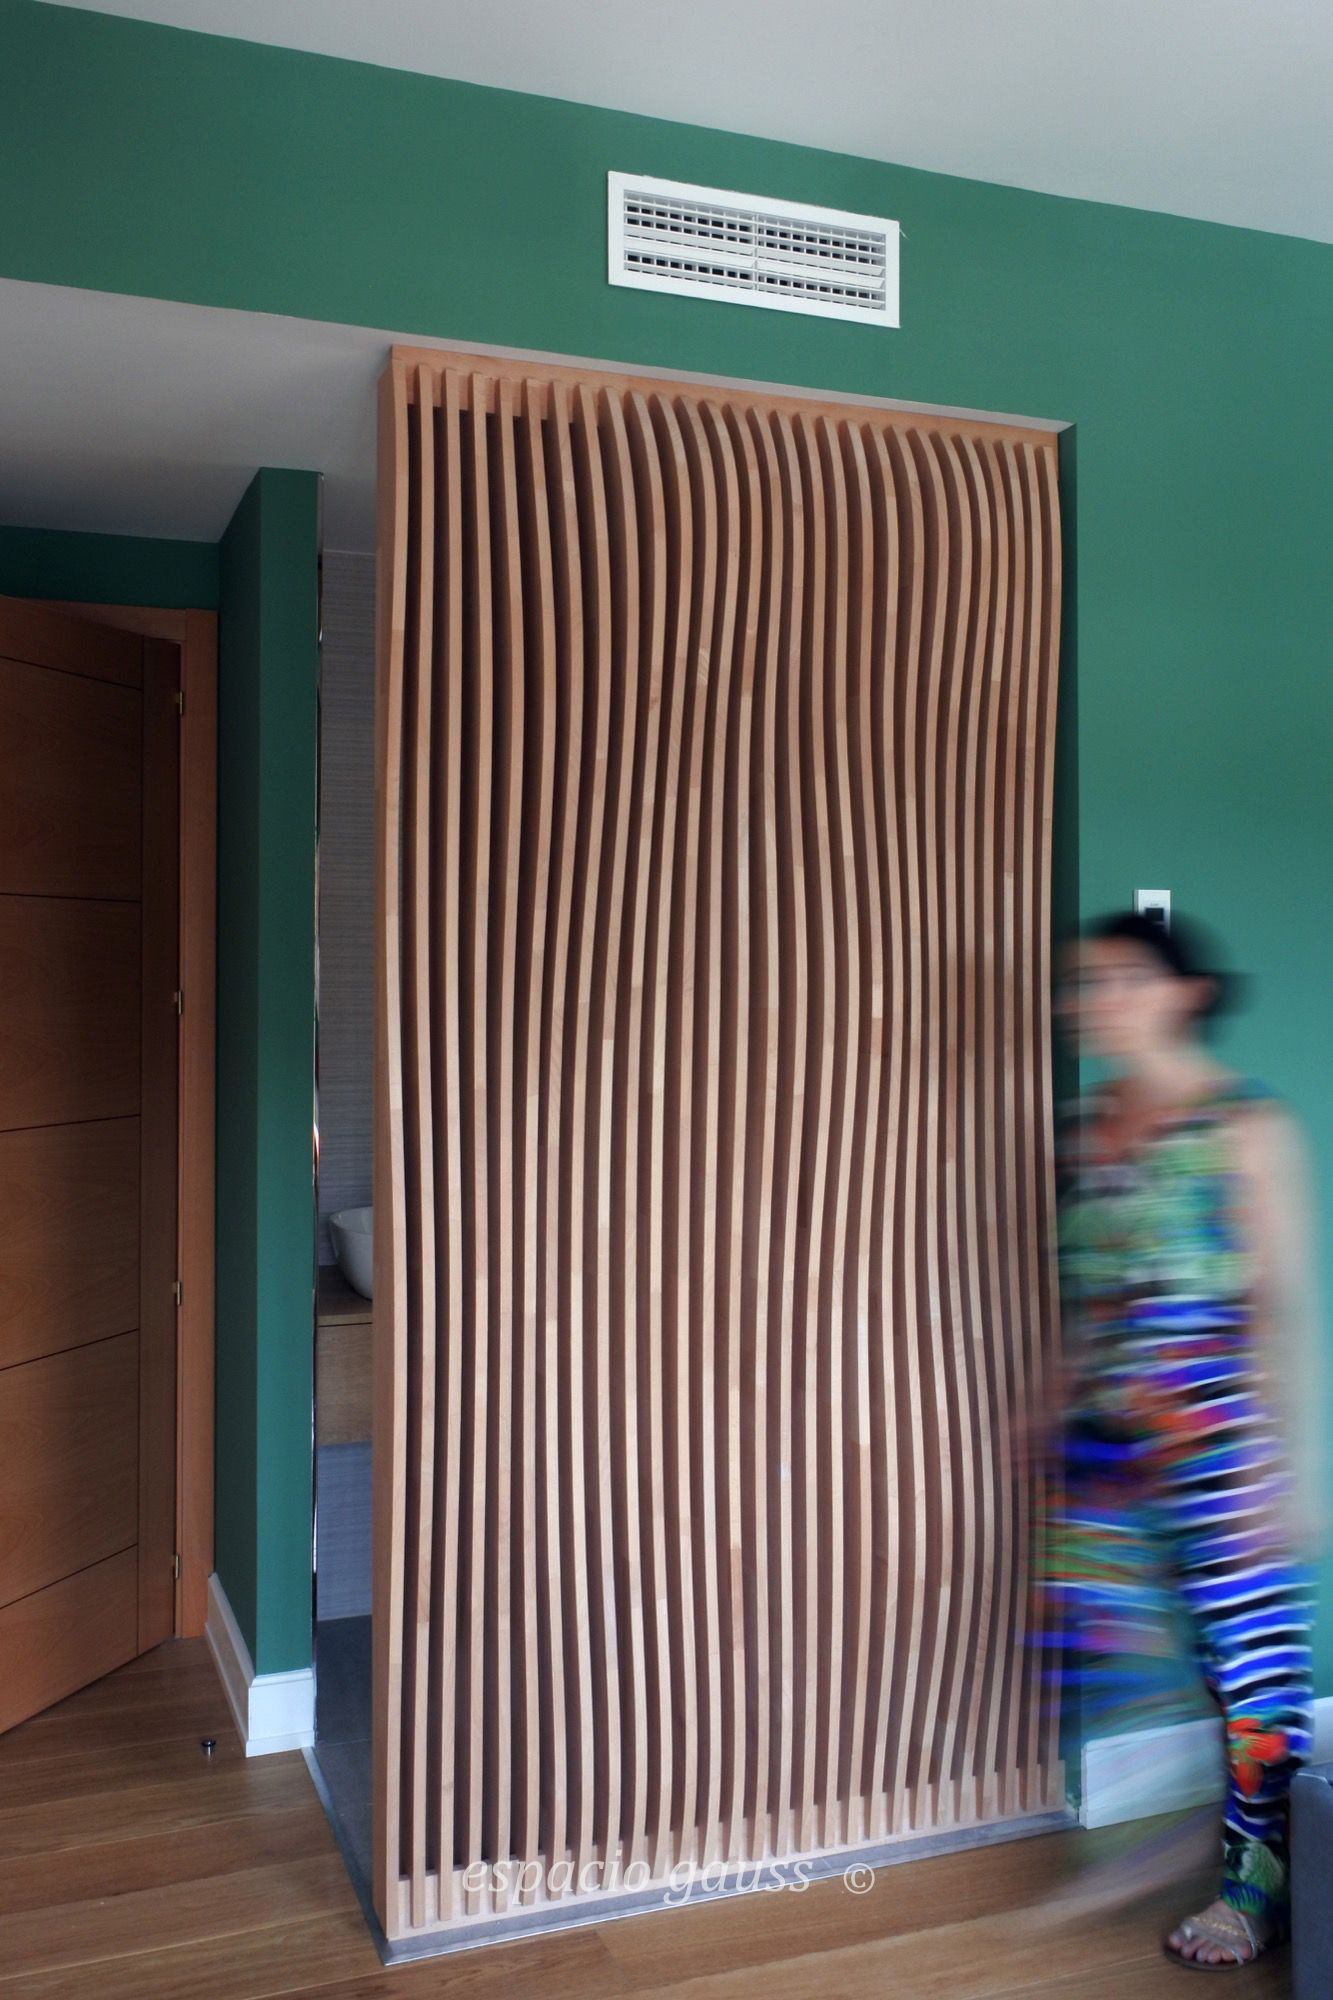 Parametric divider, by Estela San Millán. Manufactured by Espacio Gauss. Great collaboration with a former student